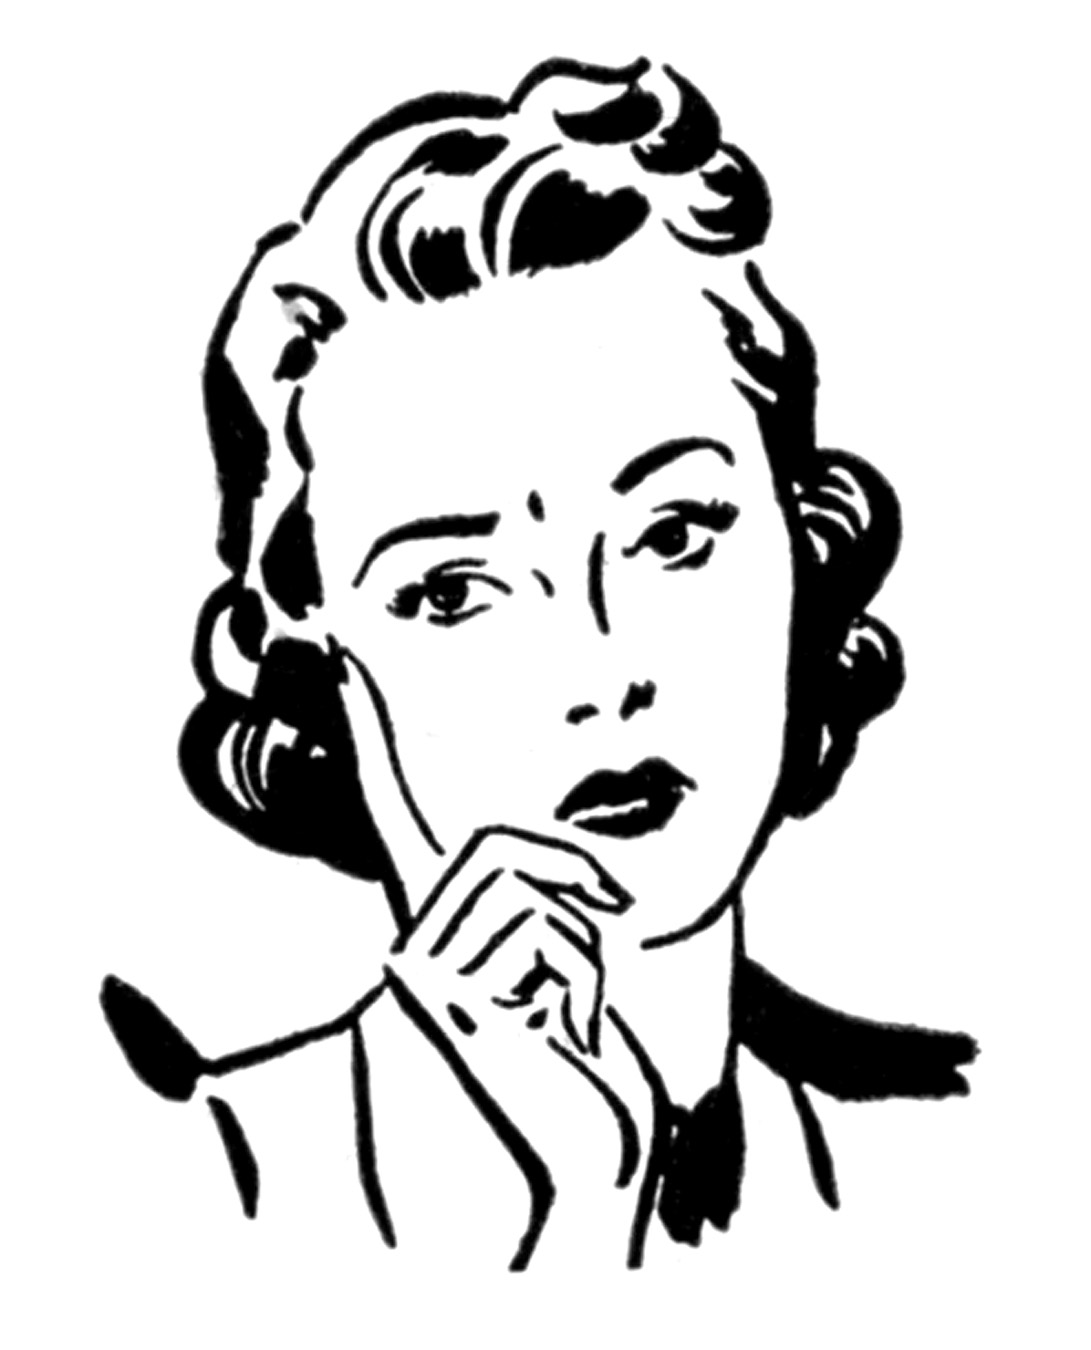 Retro clipart #3, Download drawings